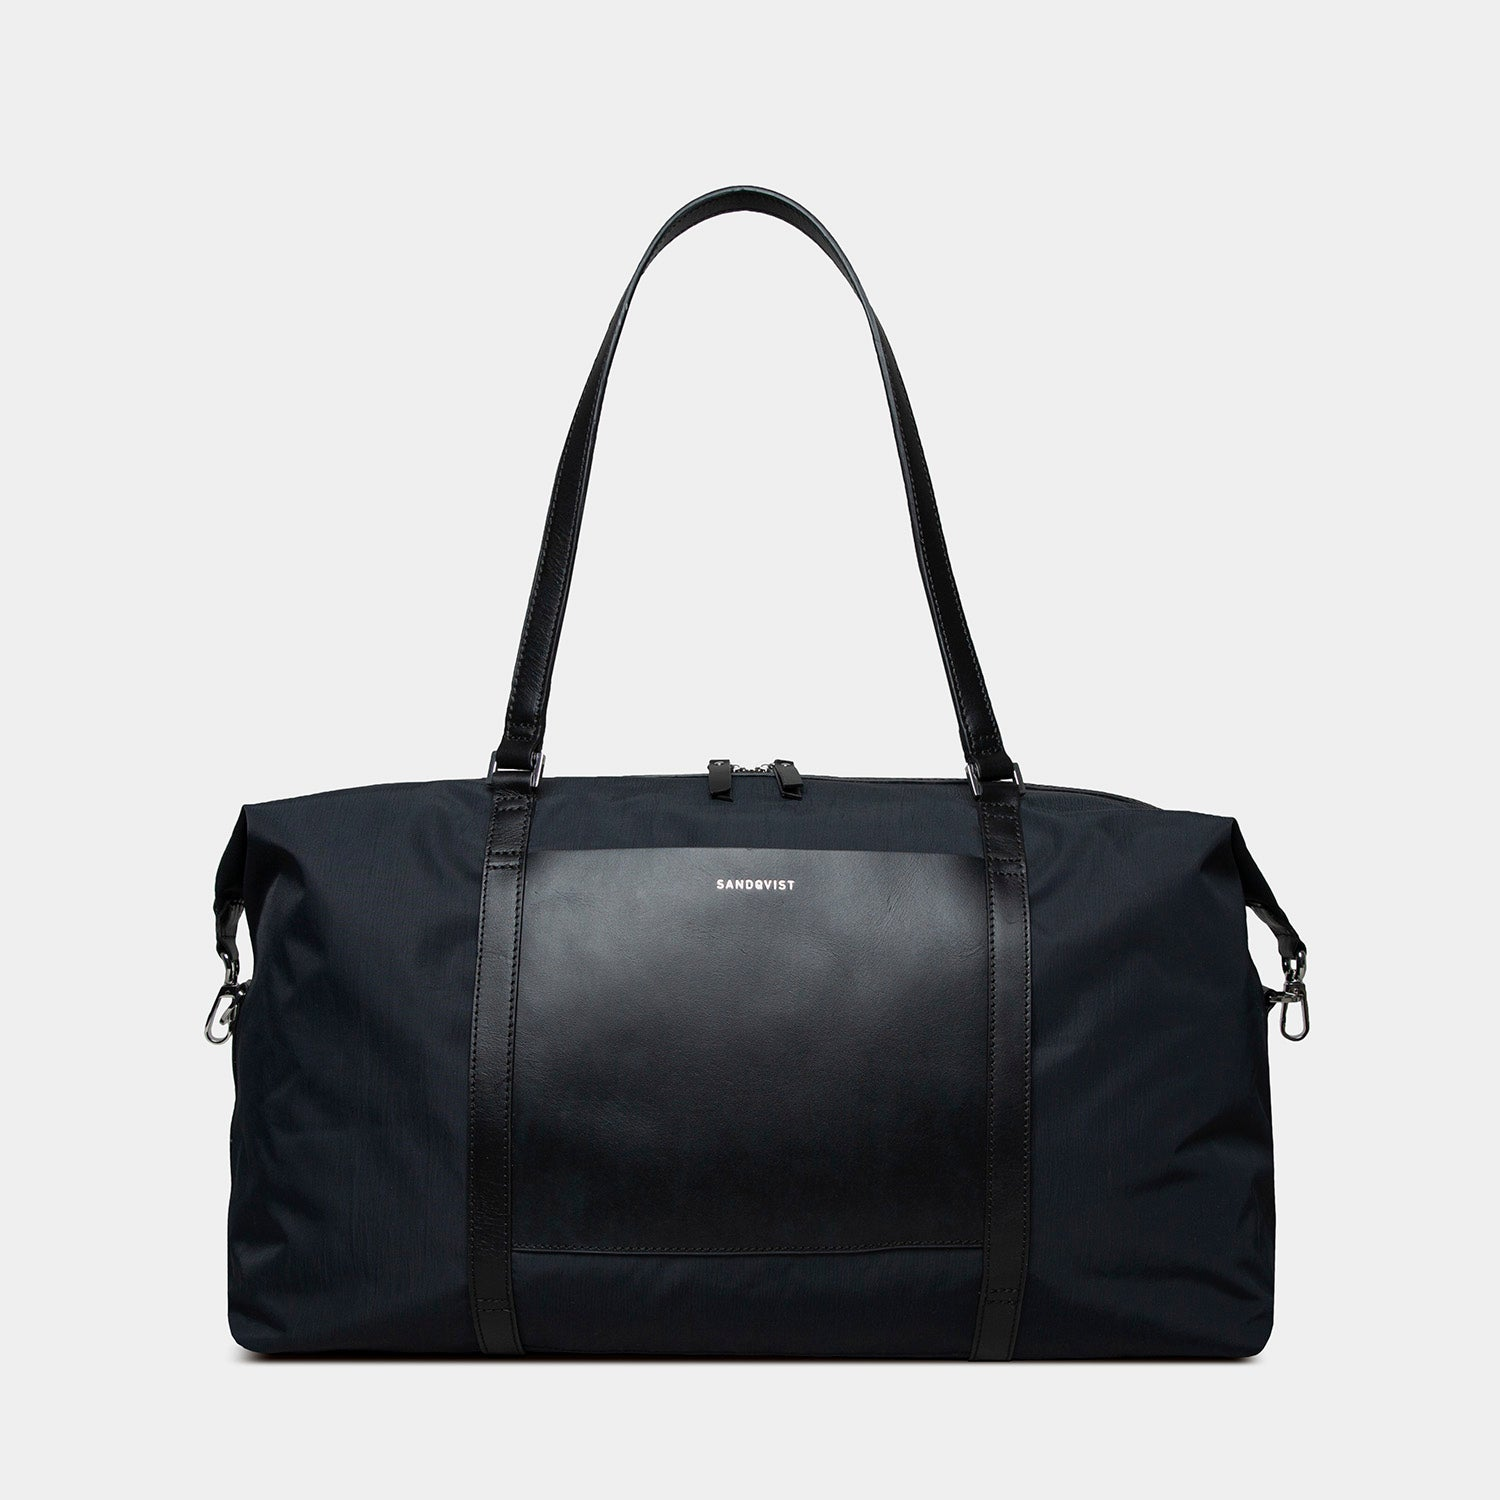 Sandqvist Hellen Gym Bag - Black